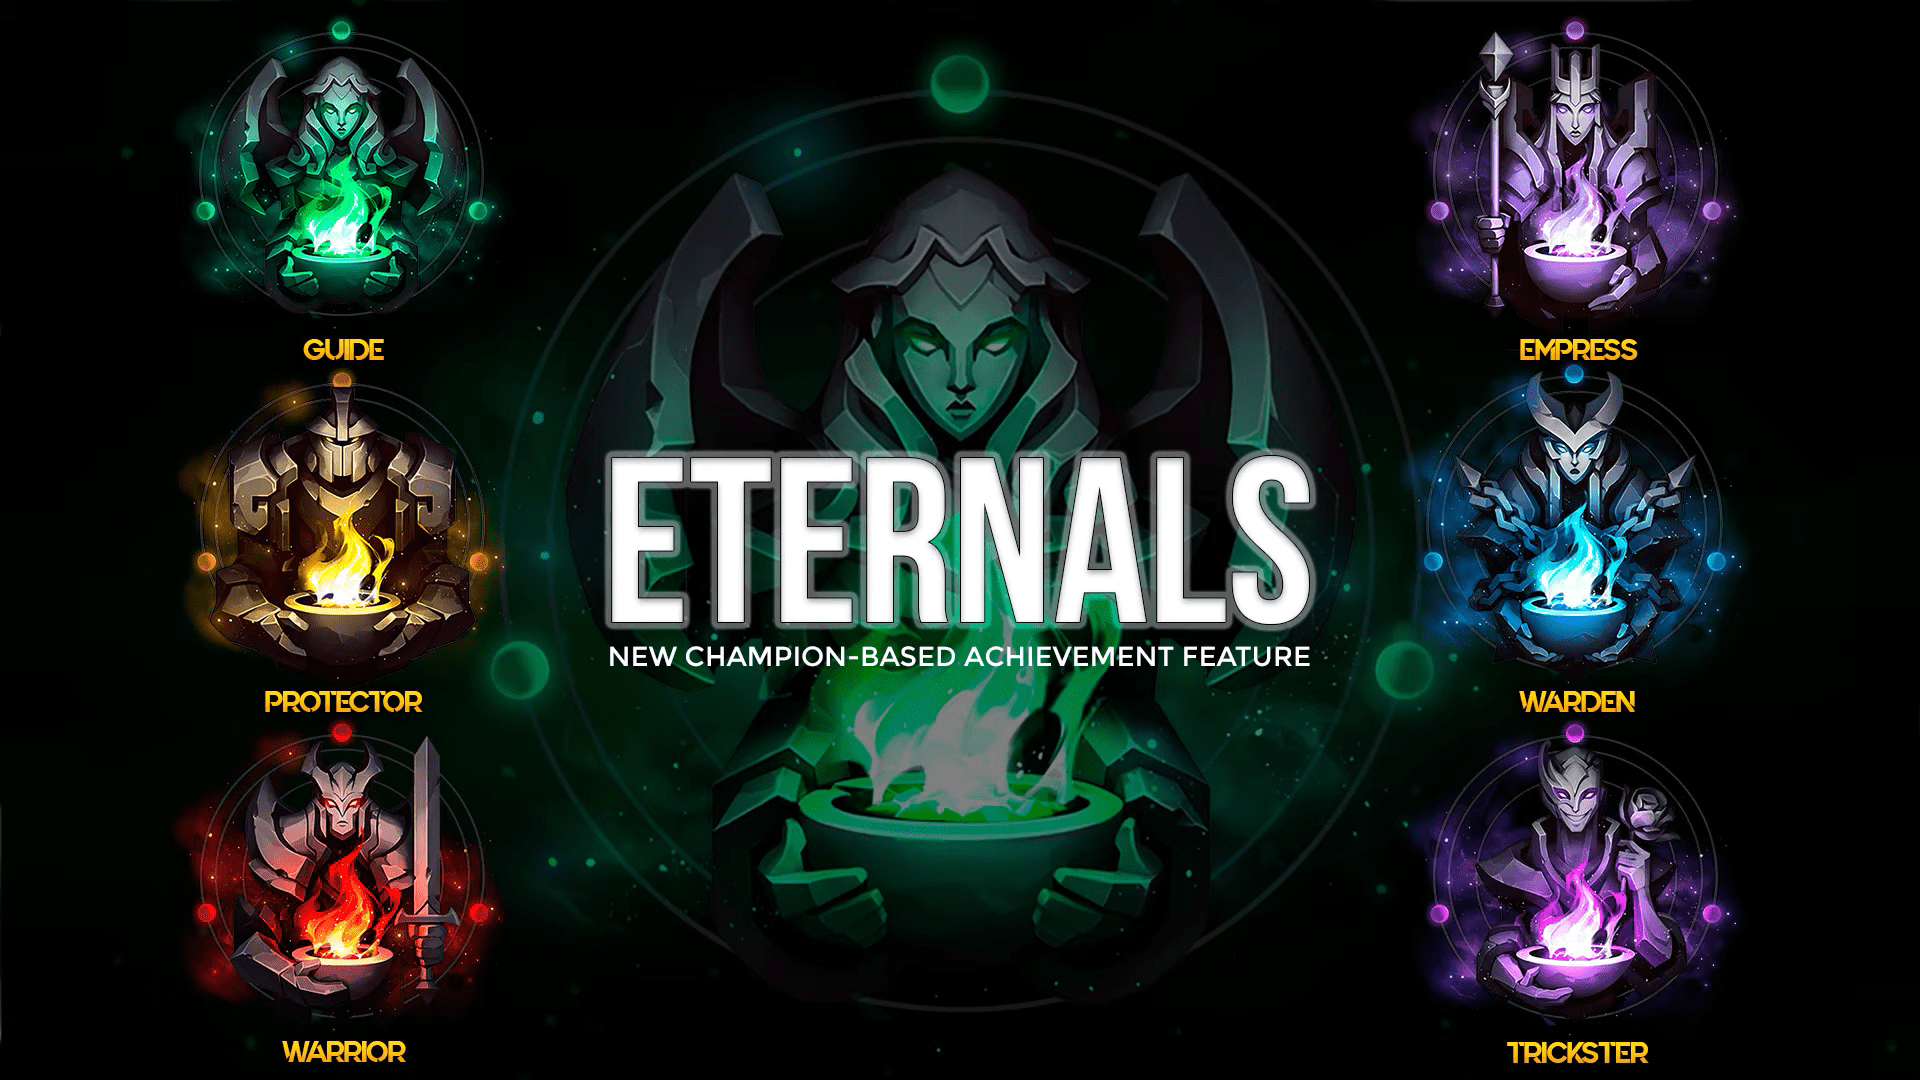 League Of Legends Players Complain About Upcoming Stat-Tracking Eternals Feature; Riot Responds With Changes Ahead Of Release